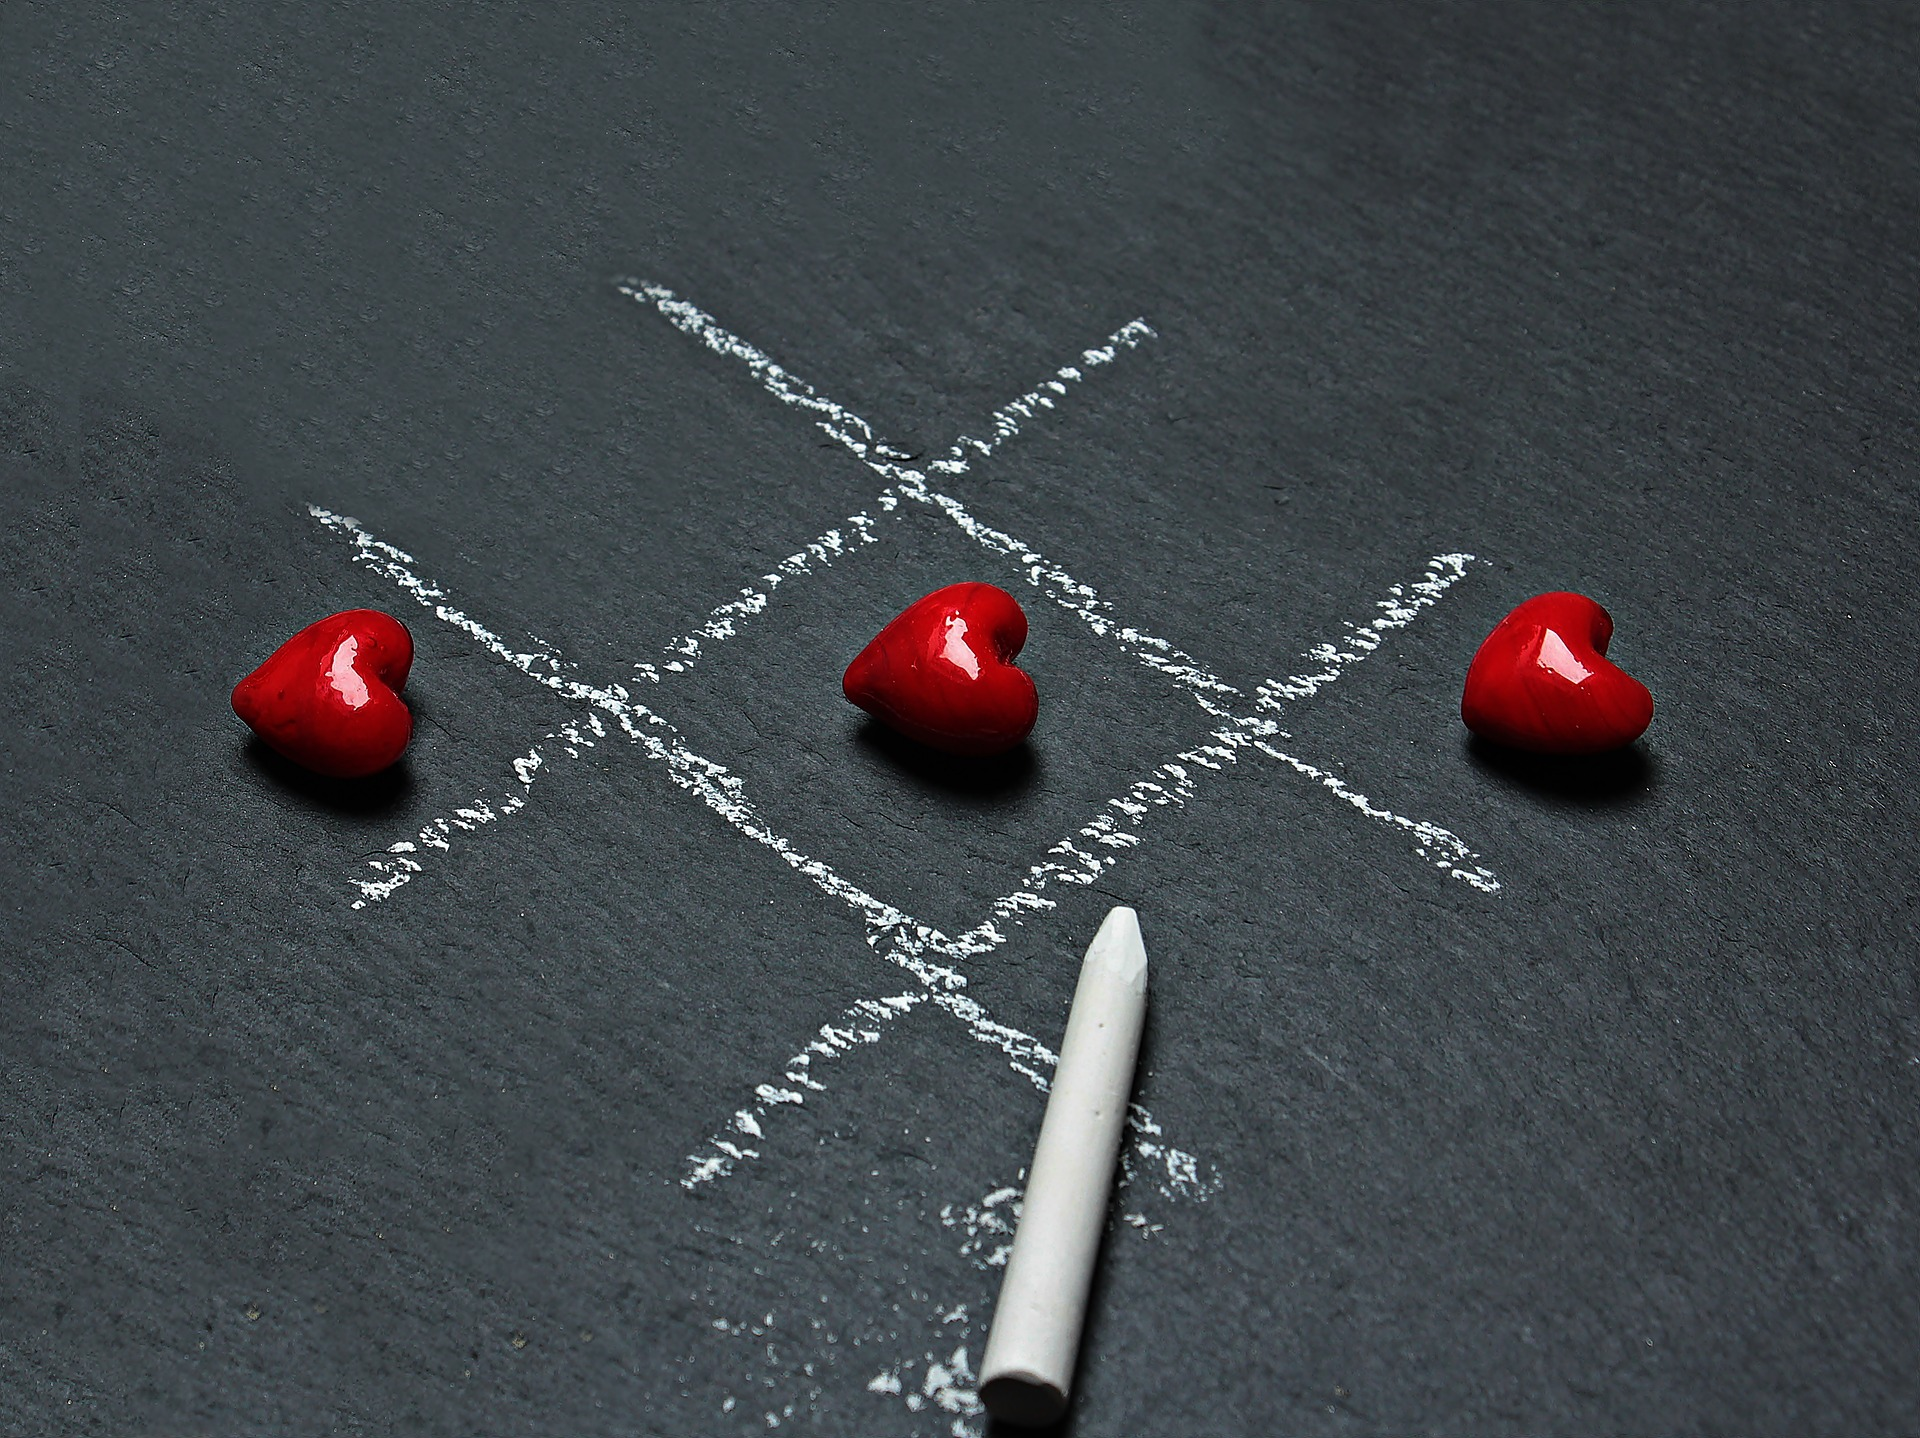 Tic Tac Toe, Activity, Game, Object, Sport, HQ Photo